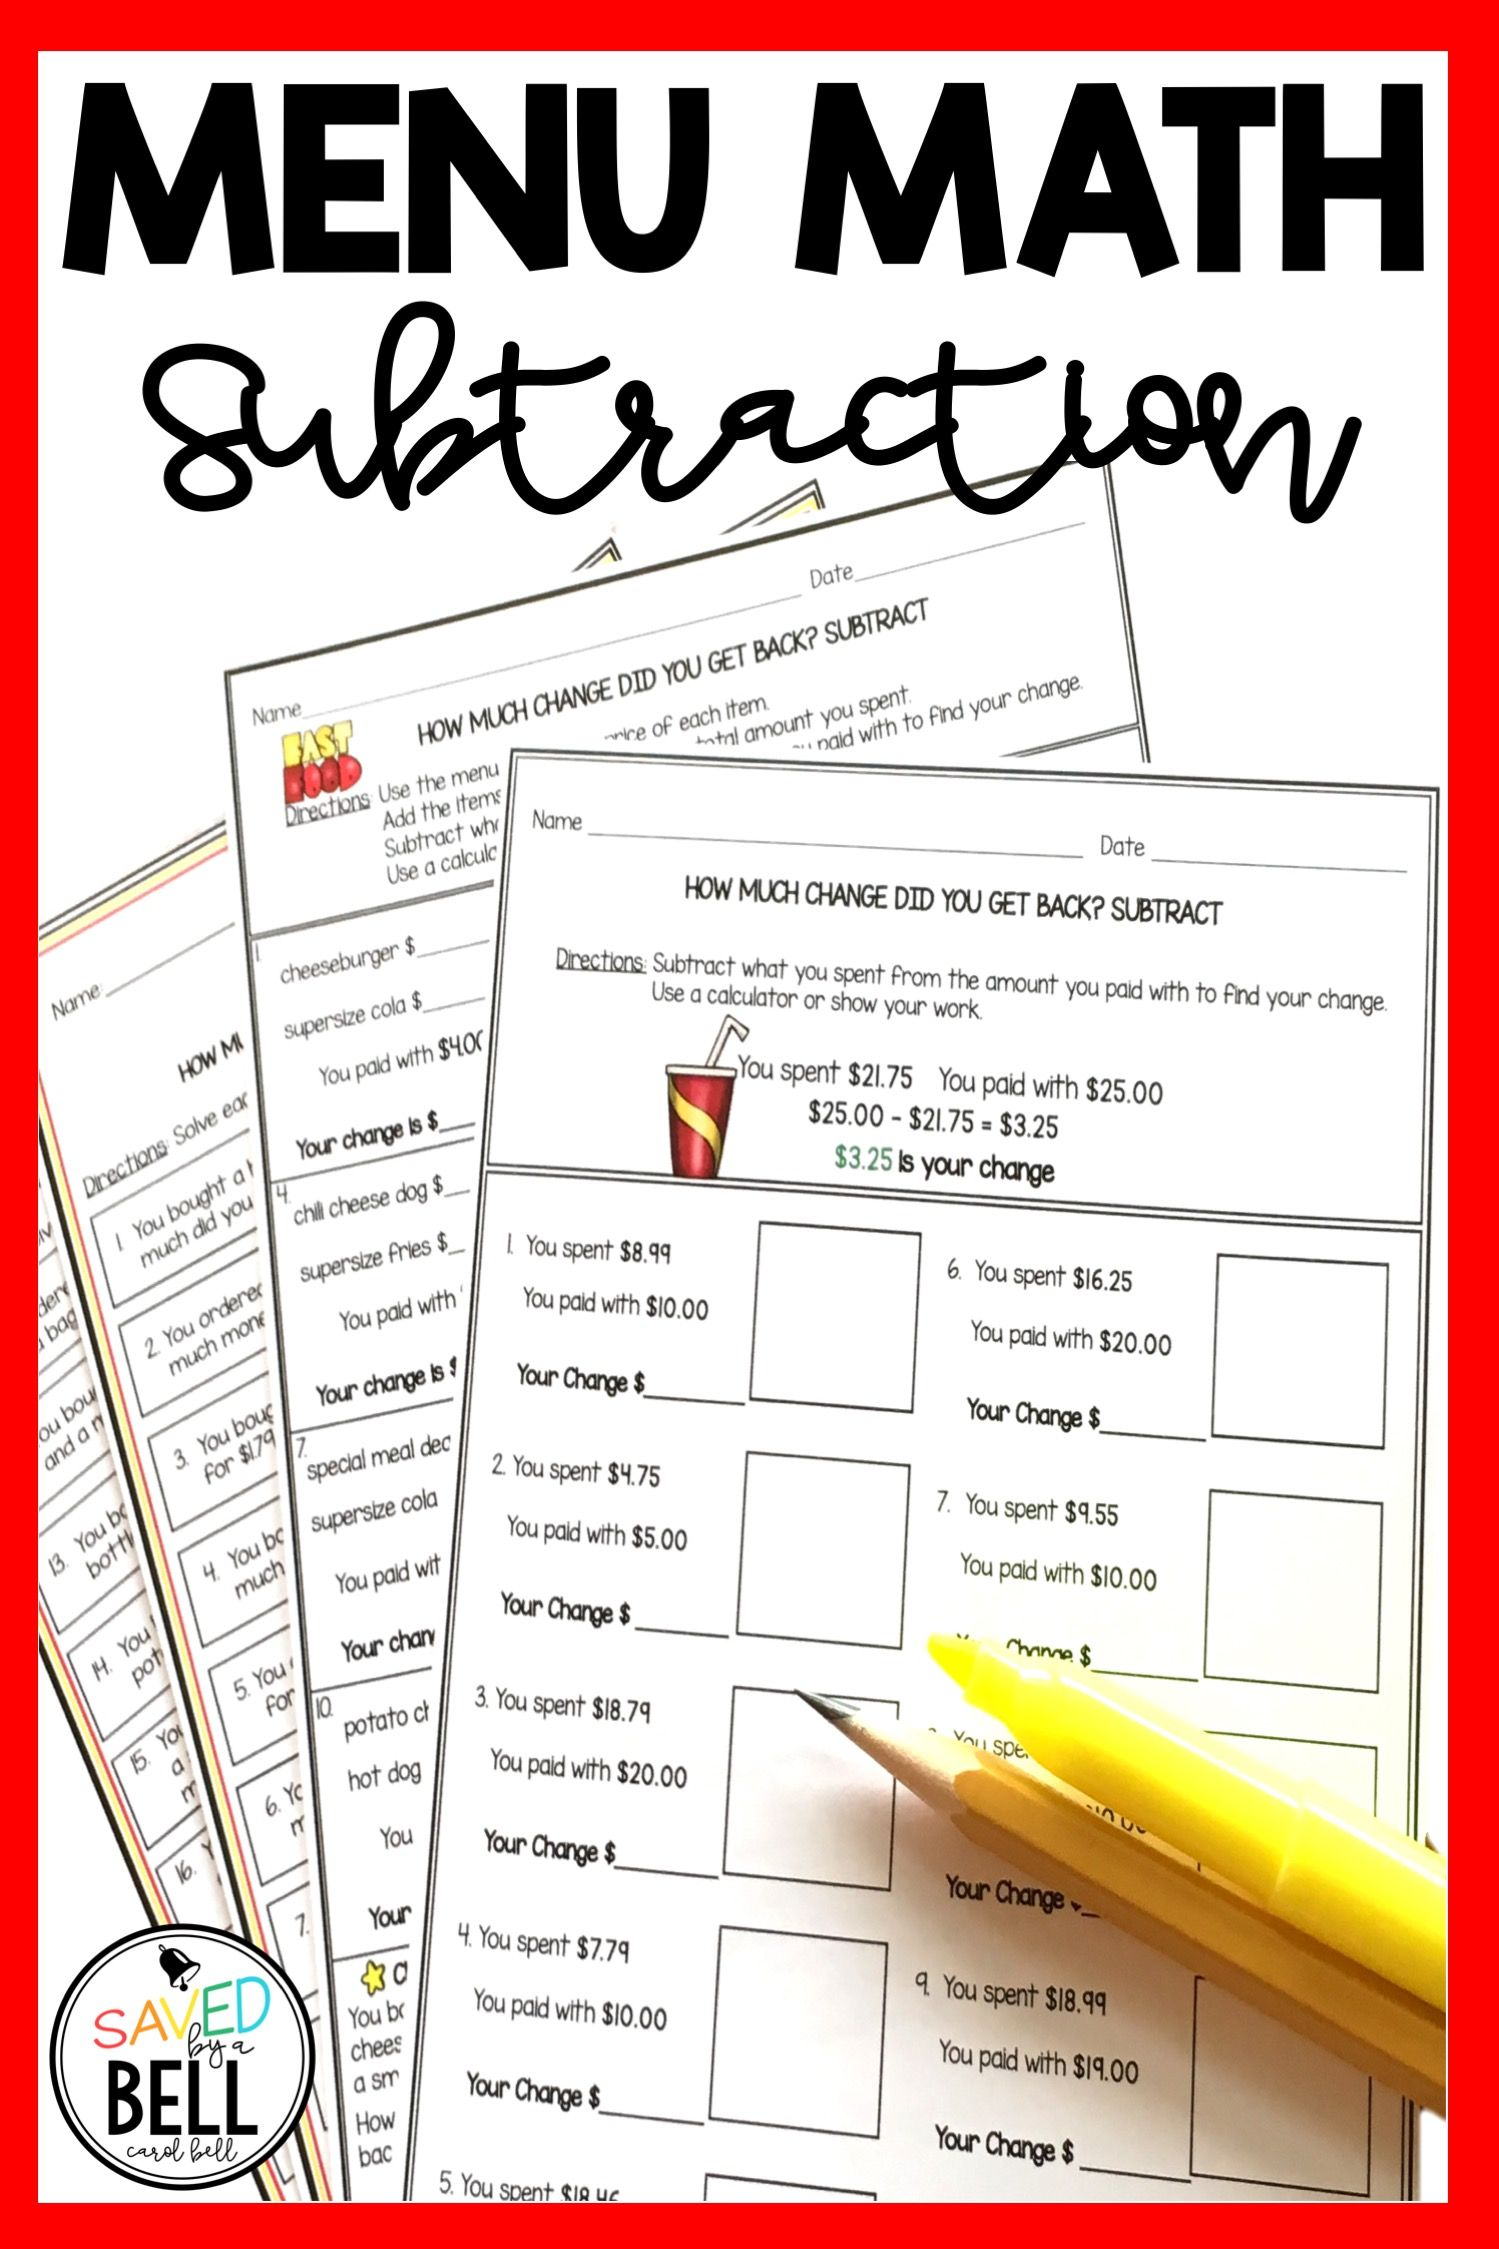 Real World Math Printables Students Use A Fast Food Menu With Awesome Pictures To Locate Prices Add It Math Printables Math Worksheets Kids Math Worksheets